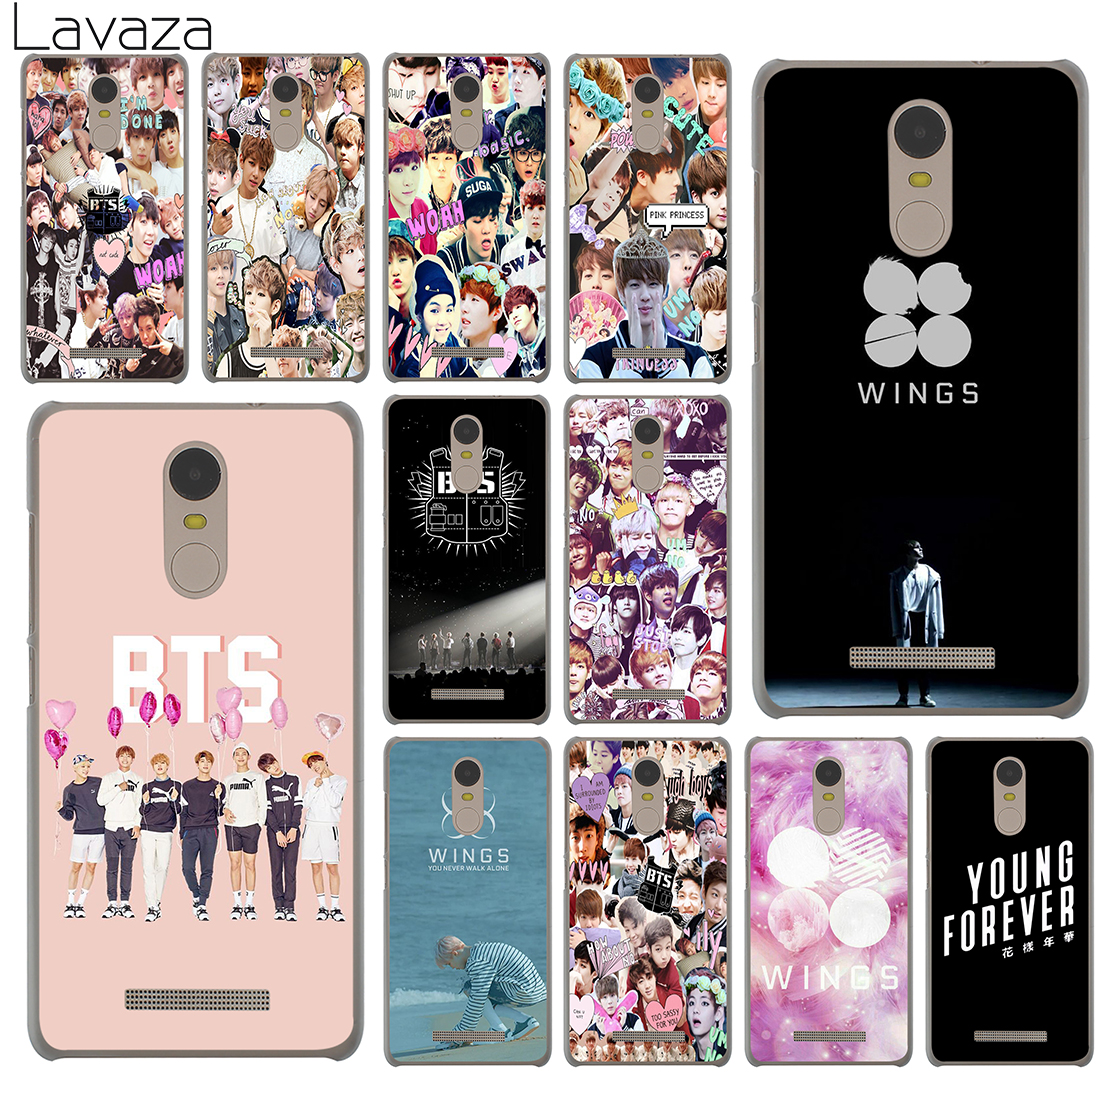 Webbedepp Bts Bangtan Young Forever Phone Case For Xiaomi Redmi 4x Note 5 Pro Hq Matte Lavaza Boys Collage Wings Hard 4a S2 6